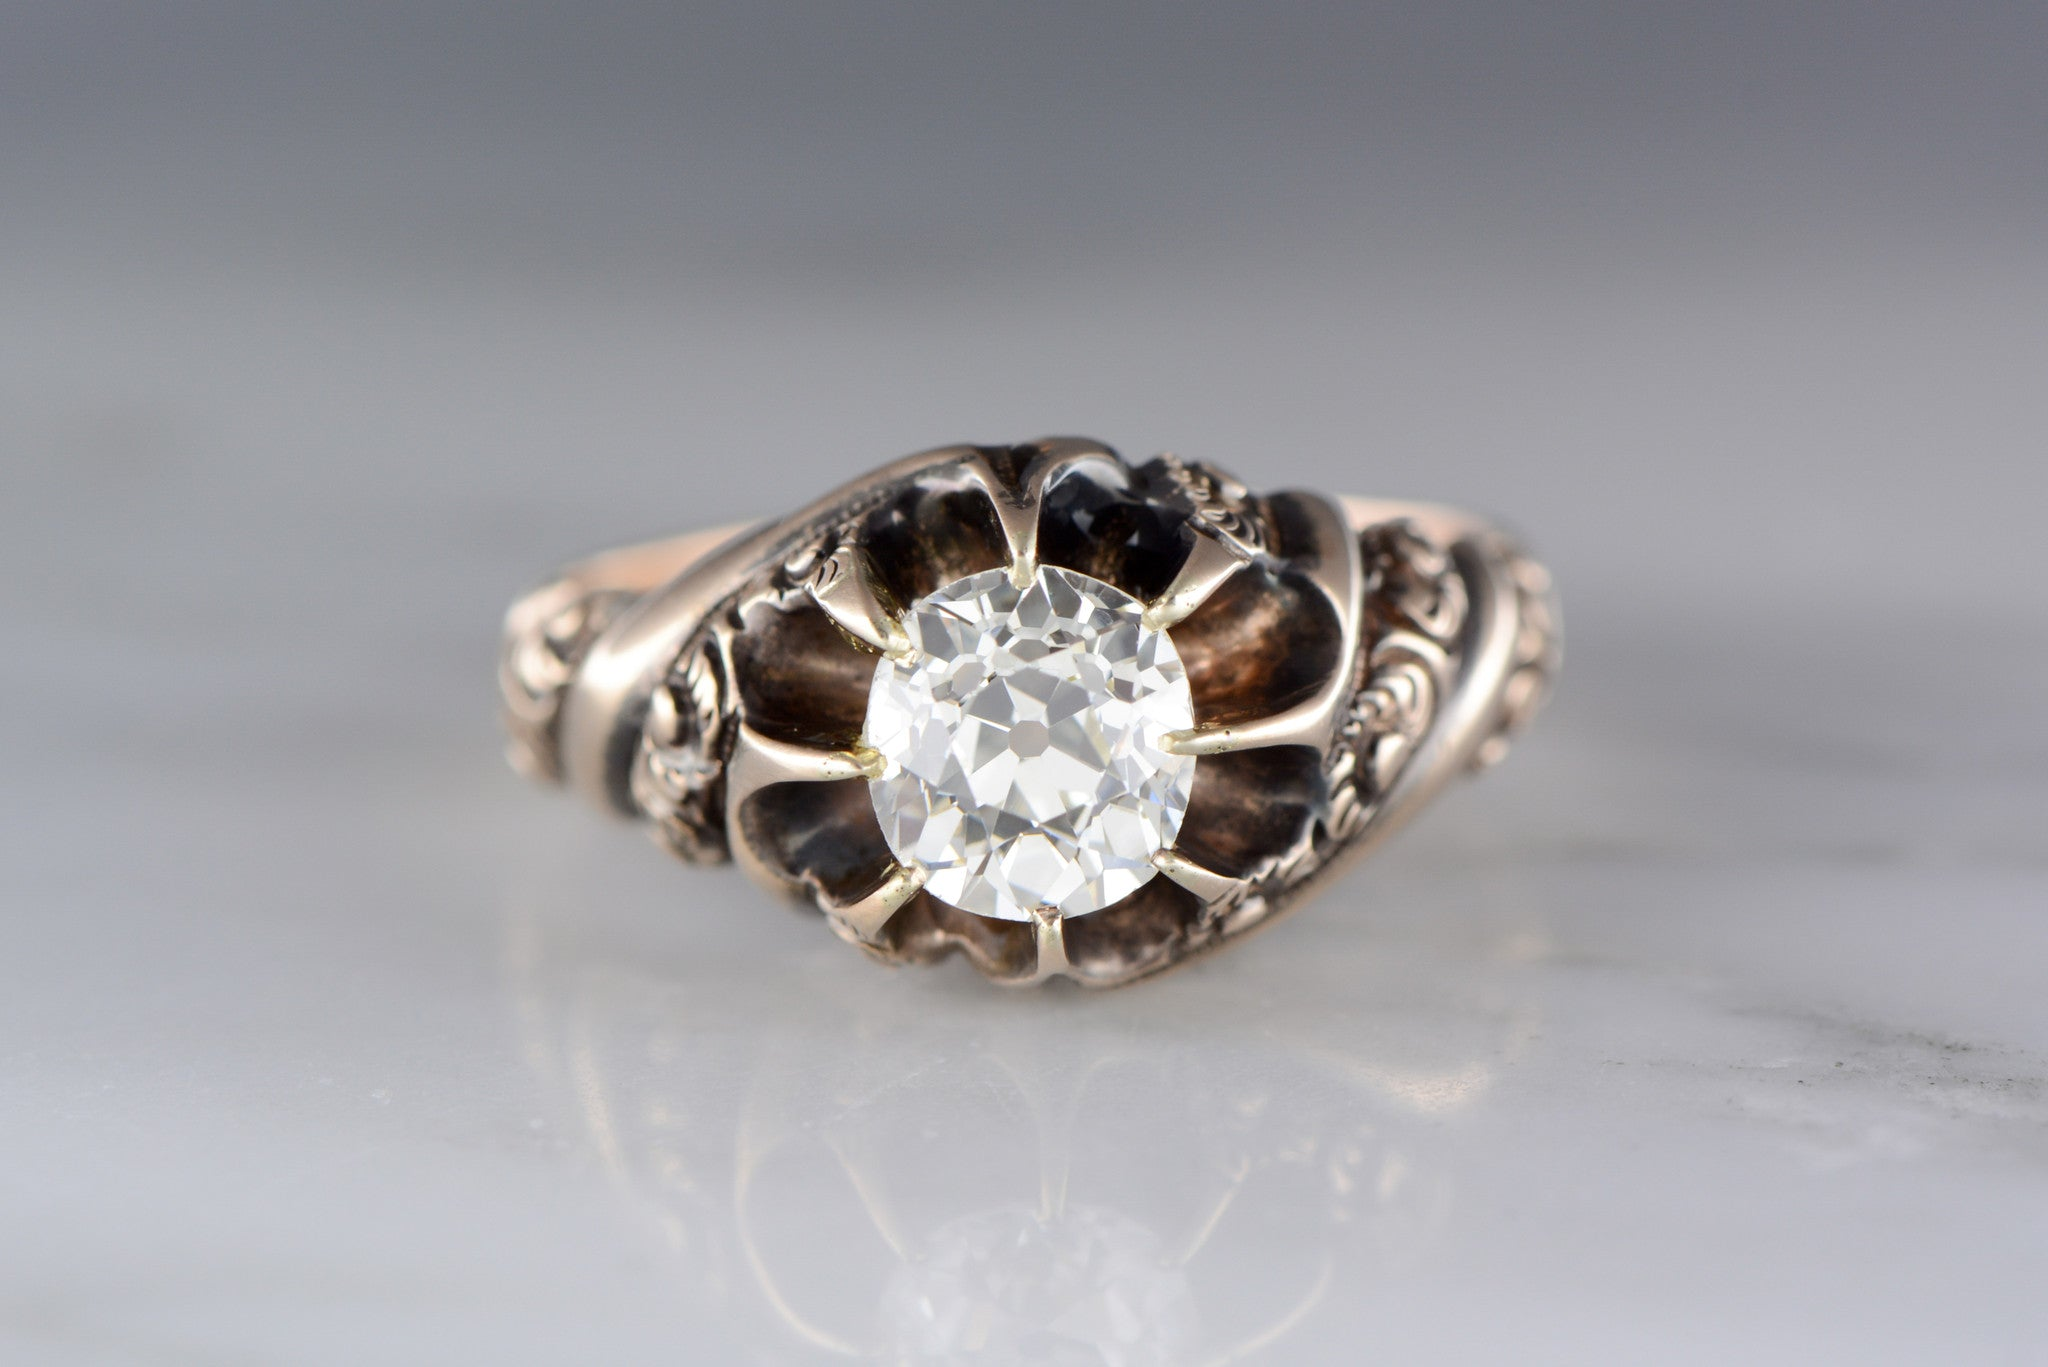 ring tdw filigree by anniversary aniversary pin wide diamond gold kobelli annello antique rings white